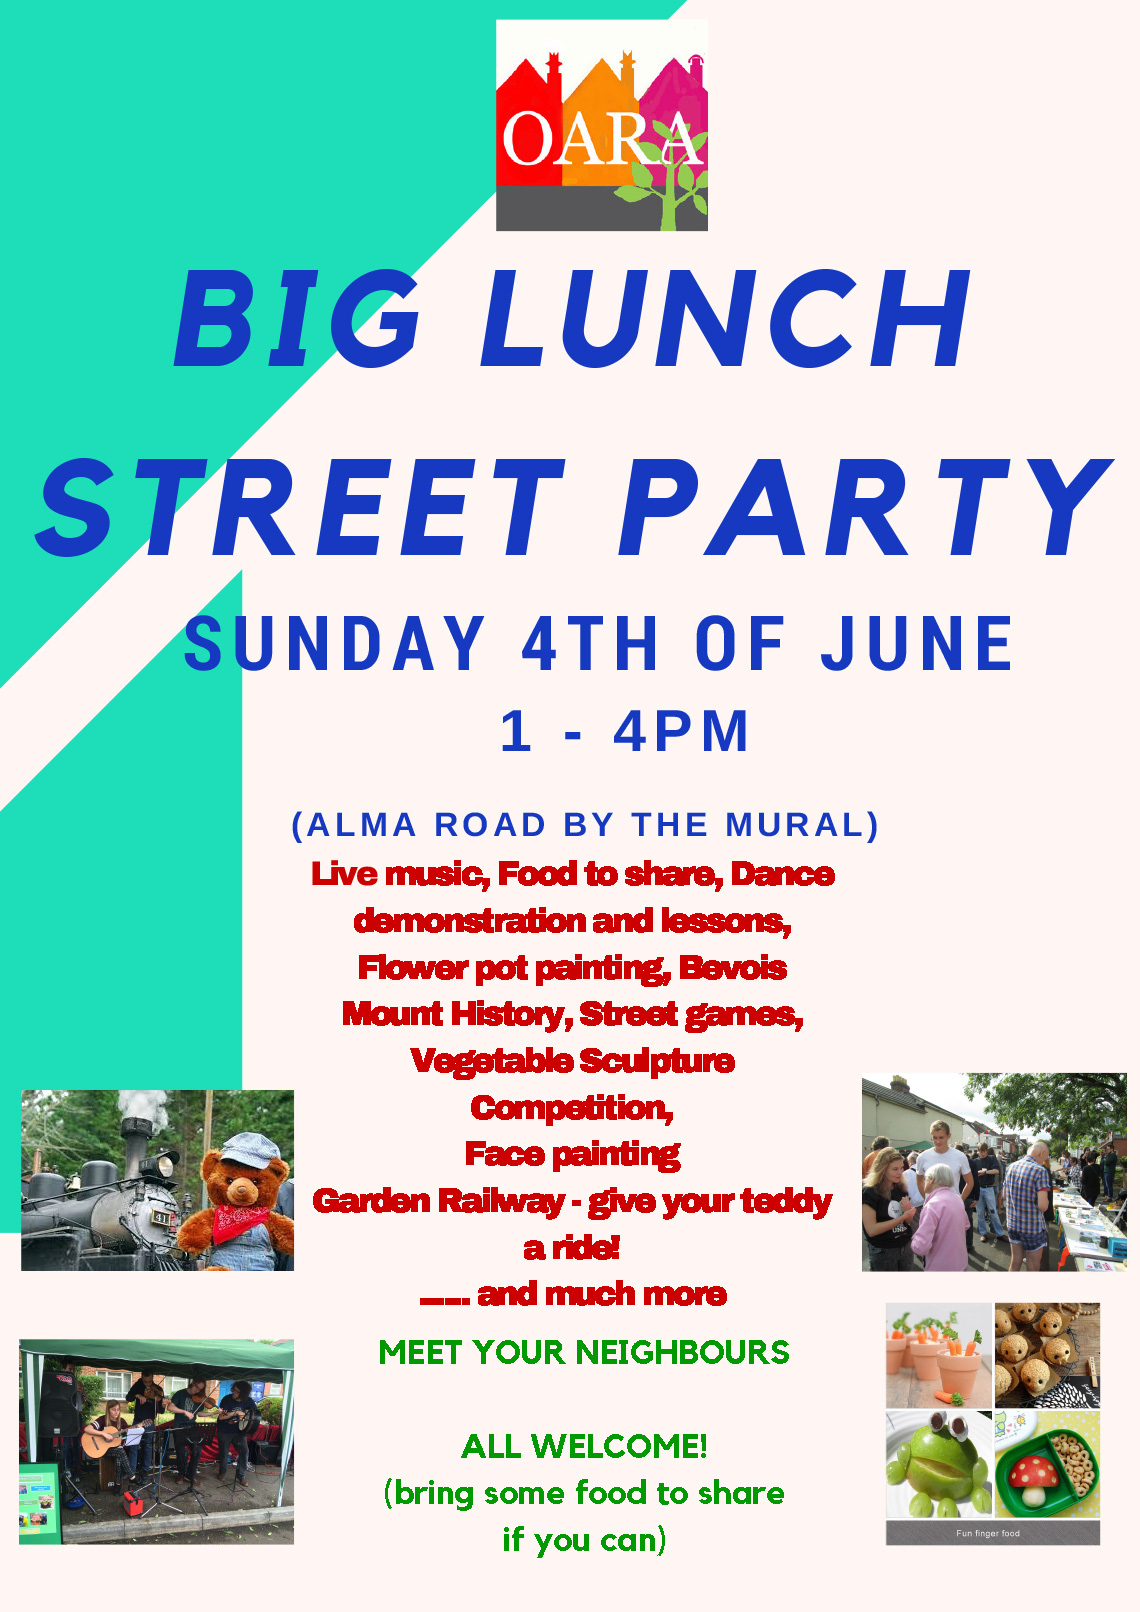 The Big Lunch - Street Party